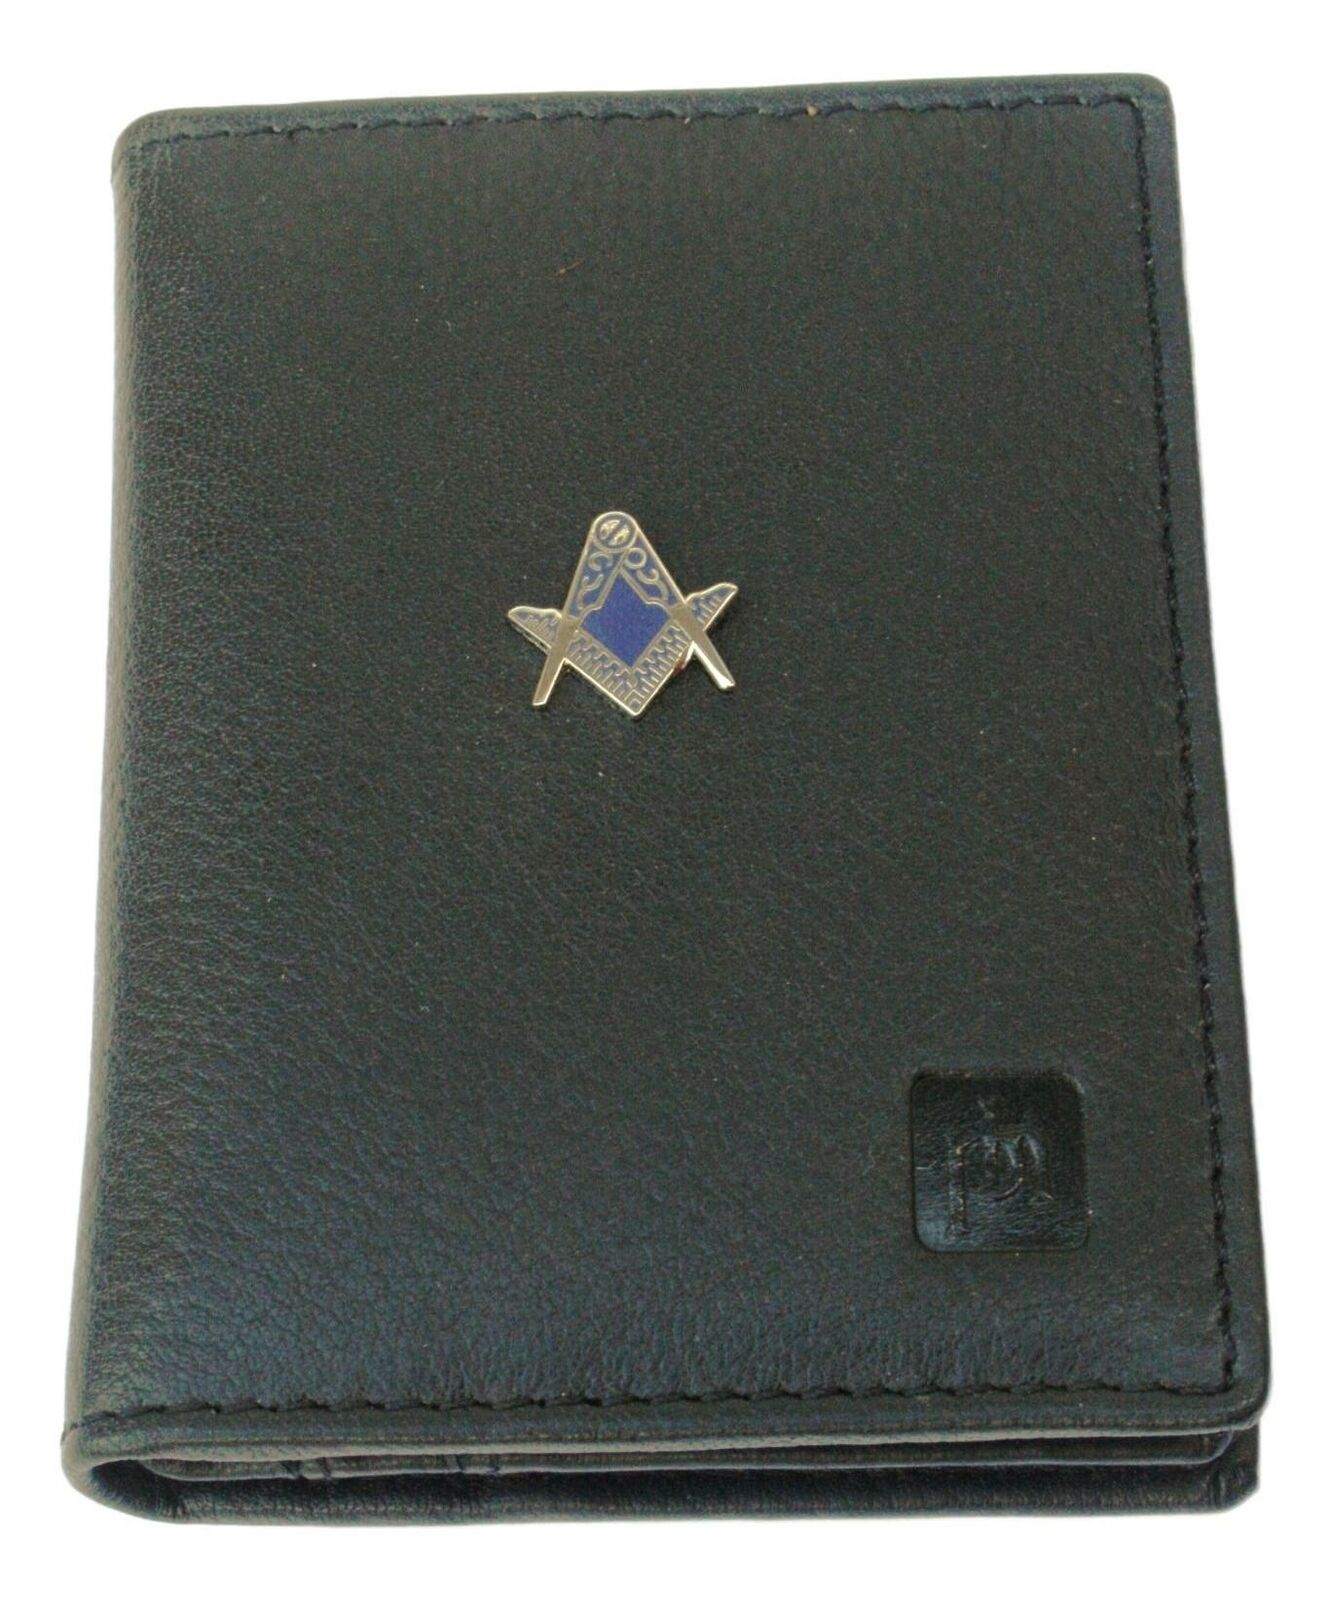 Compass & Sq Cut Out Bifold Card Holder Leather Black Wallet RFID Safe 81